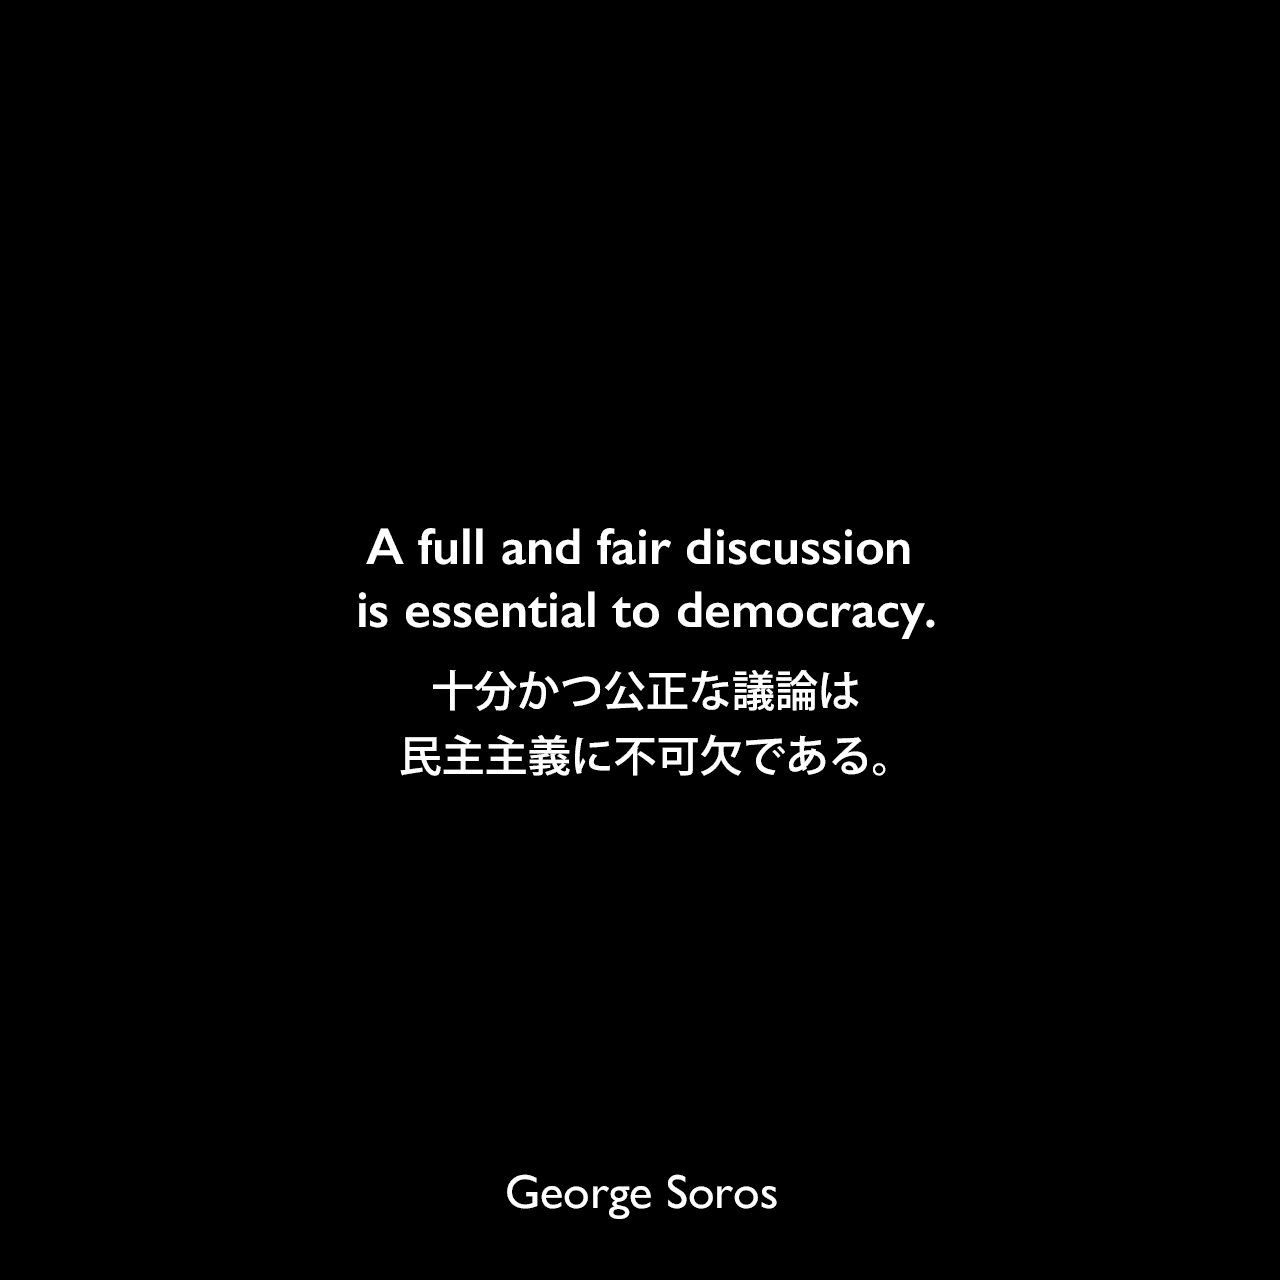 A full and fair discussion is essential to democracy.十分かつ公正な議論は、民主主義に不可欠である。George Soros